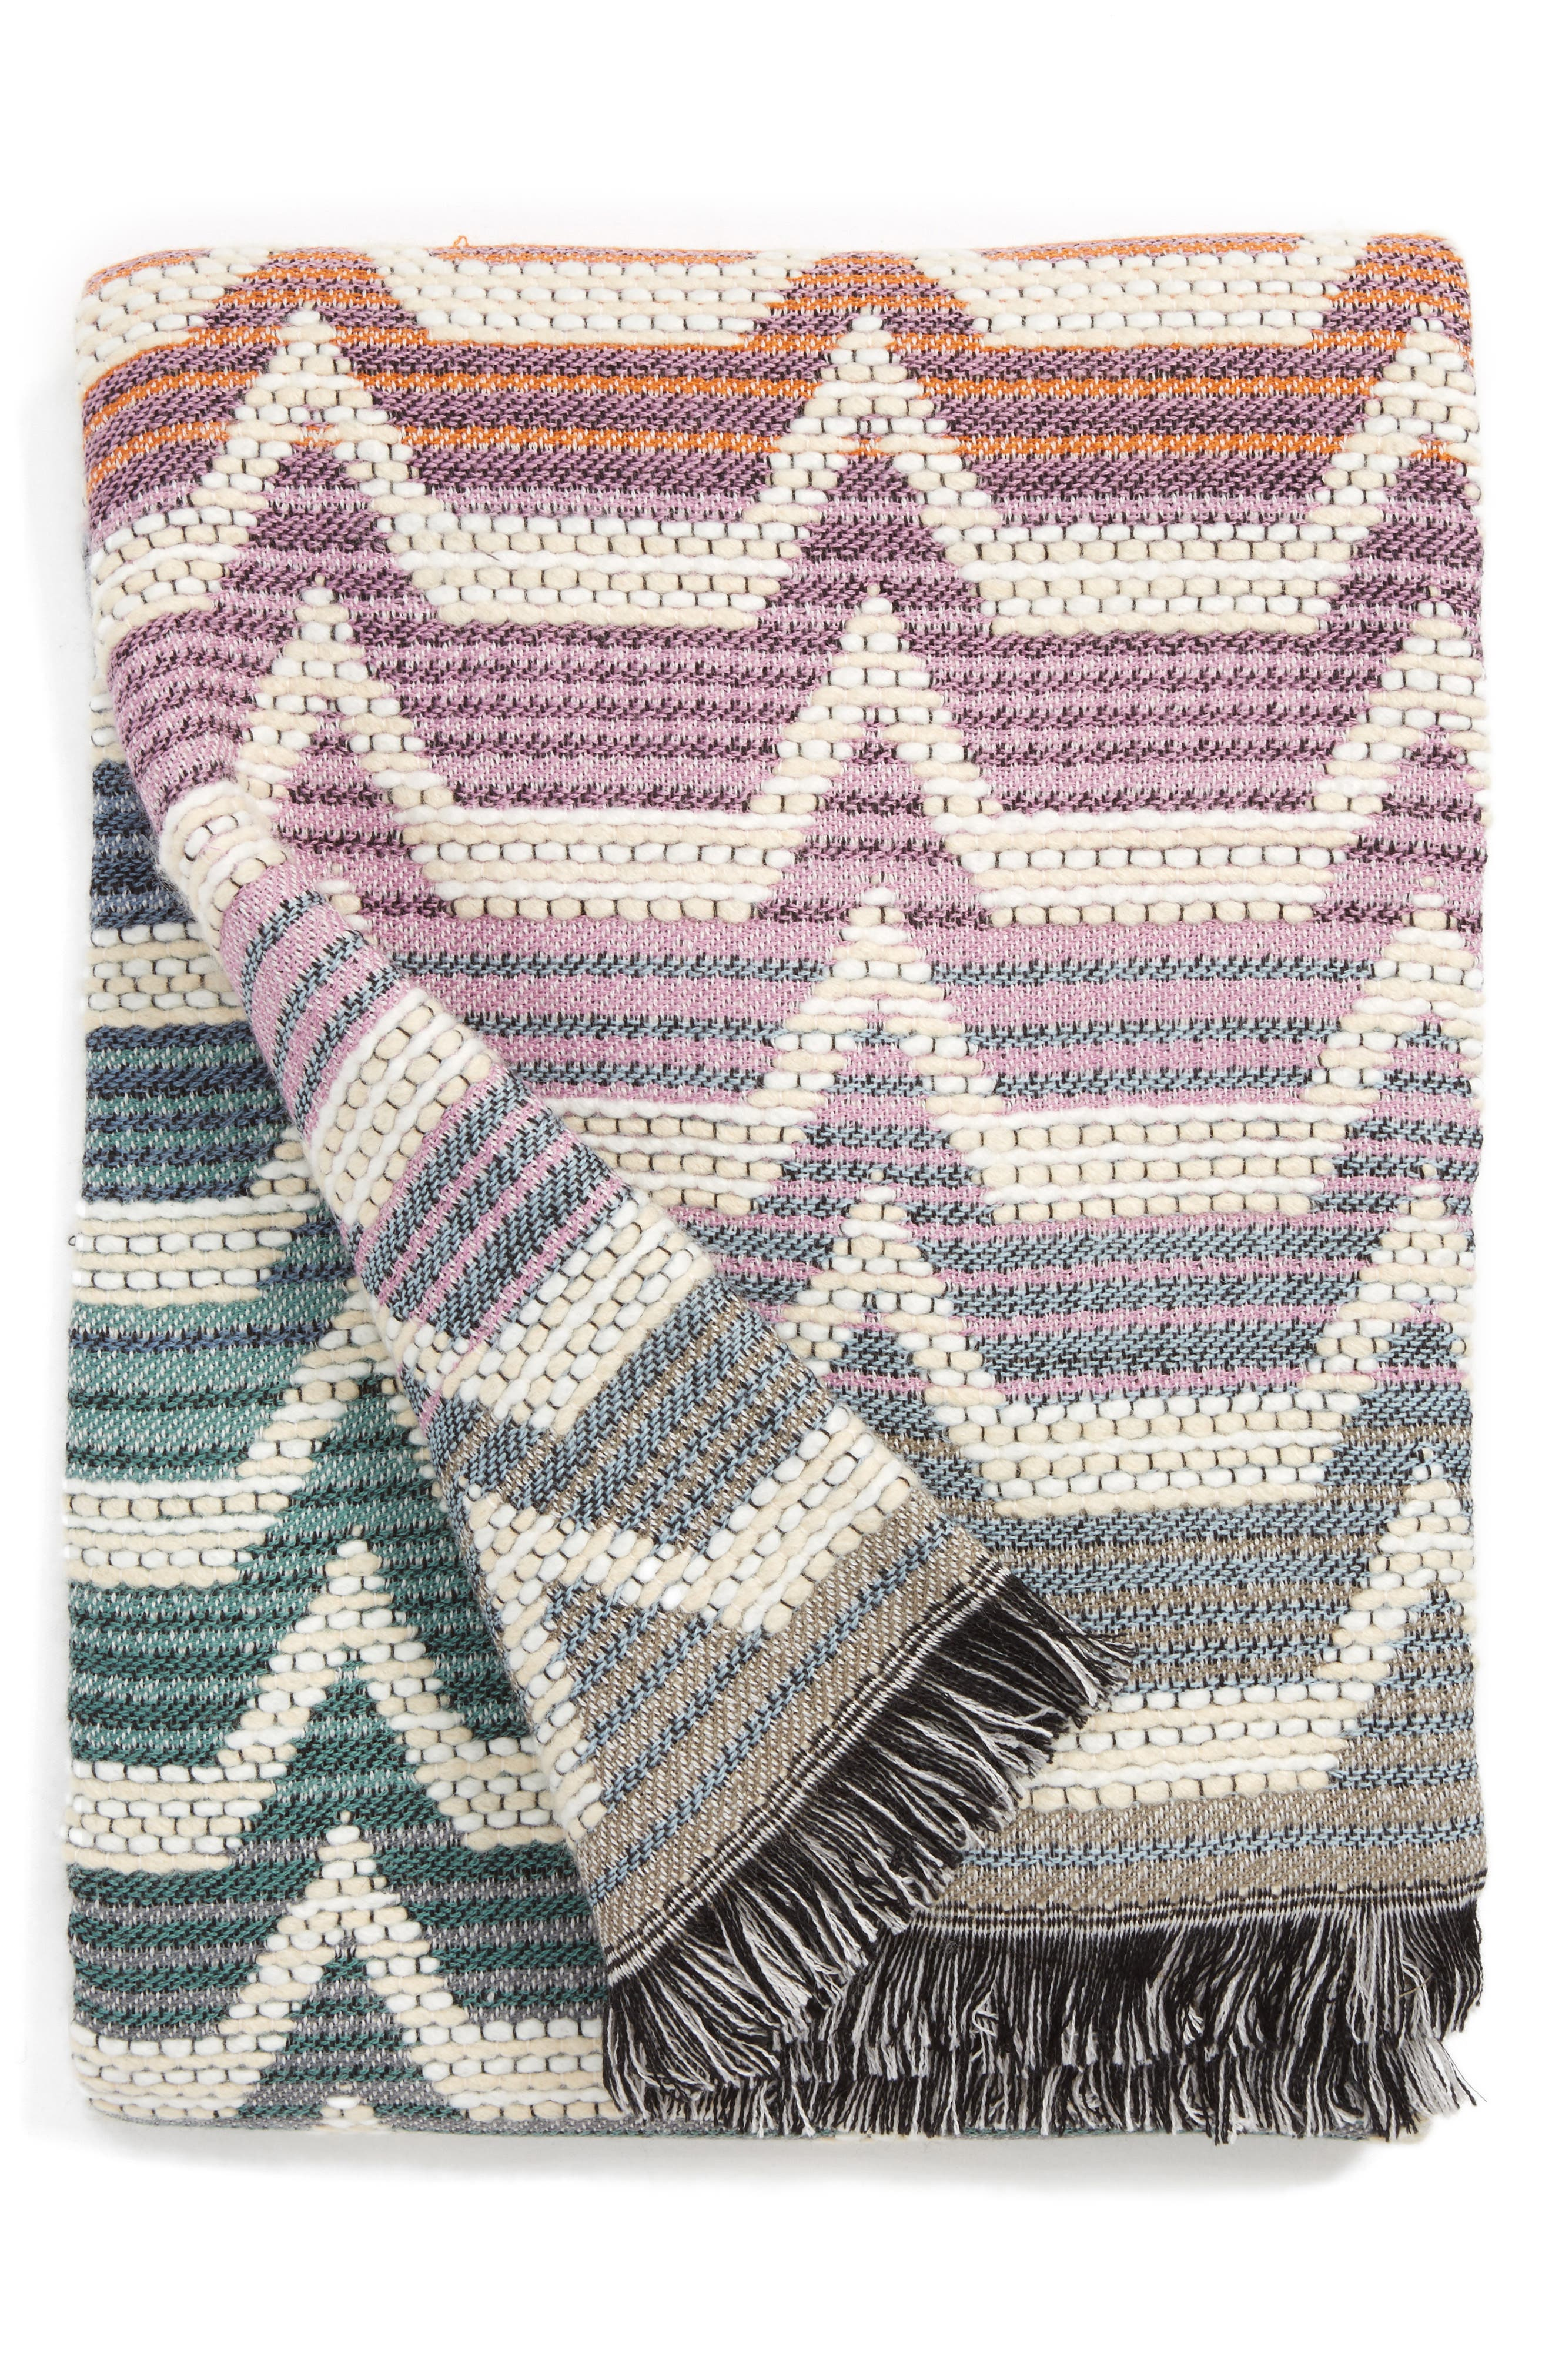 Socrate Throw Blanket,                         Main,                         color, 400